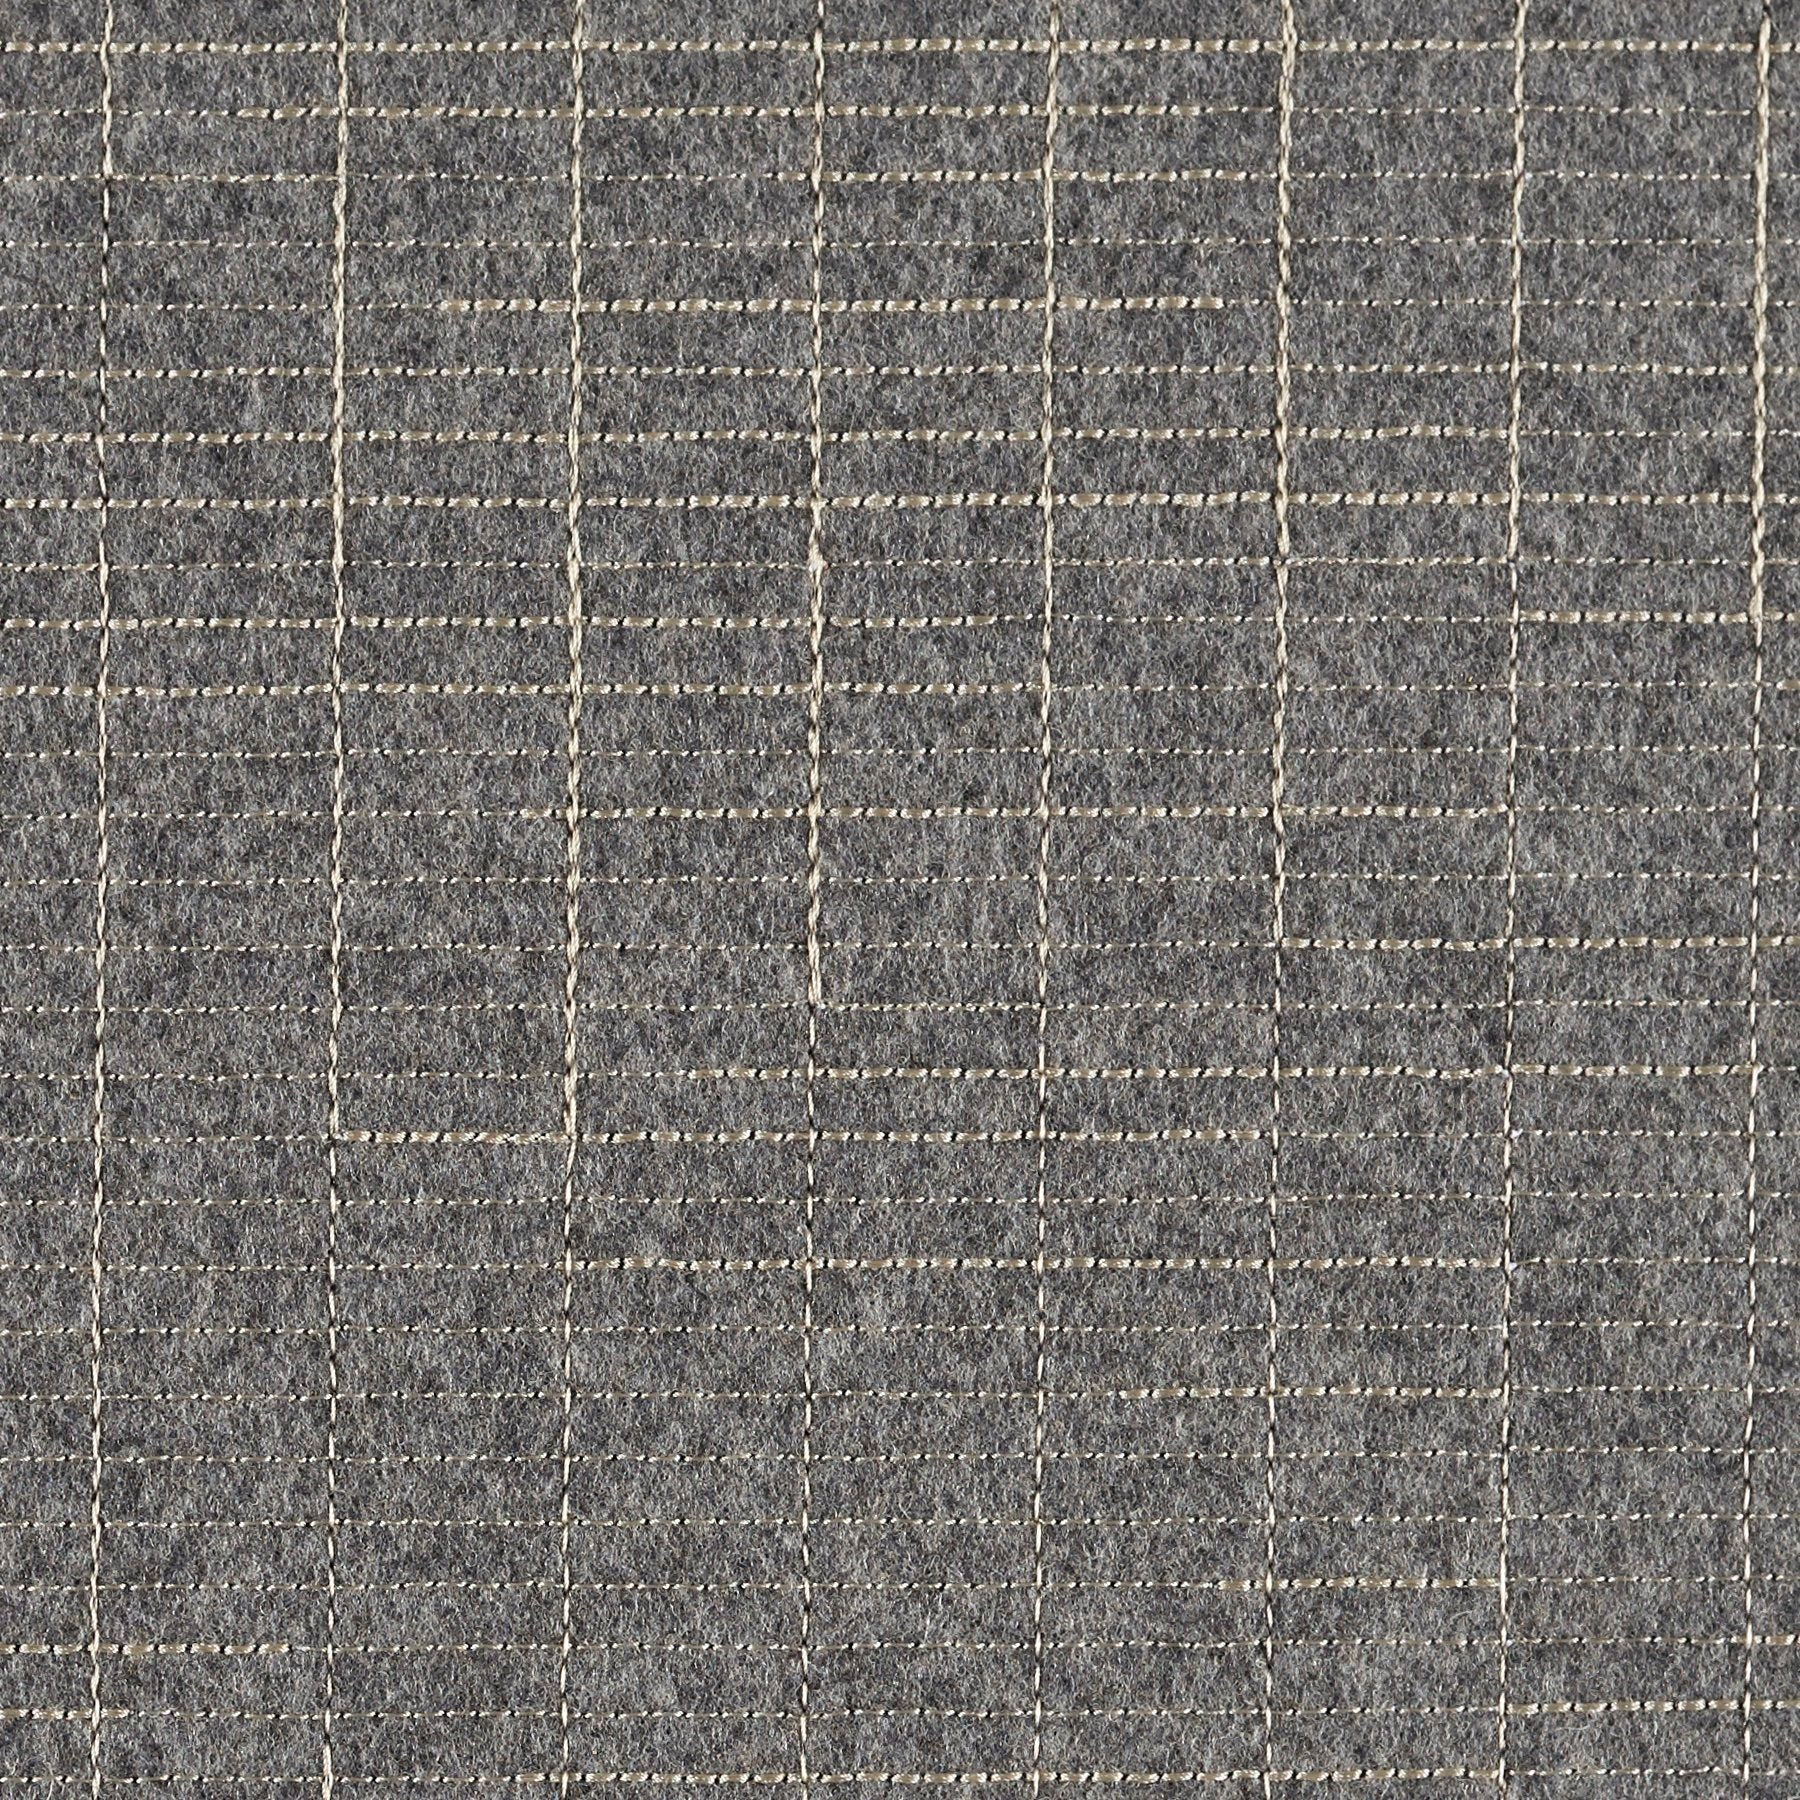 Reticulated Stone|4052-04-N303|Reticulated Stone 4052-04-N303